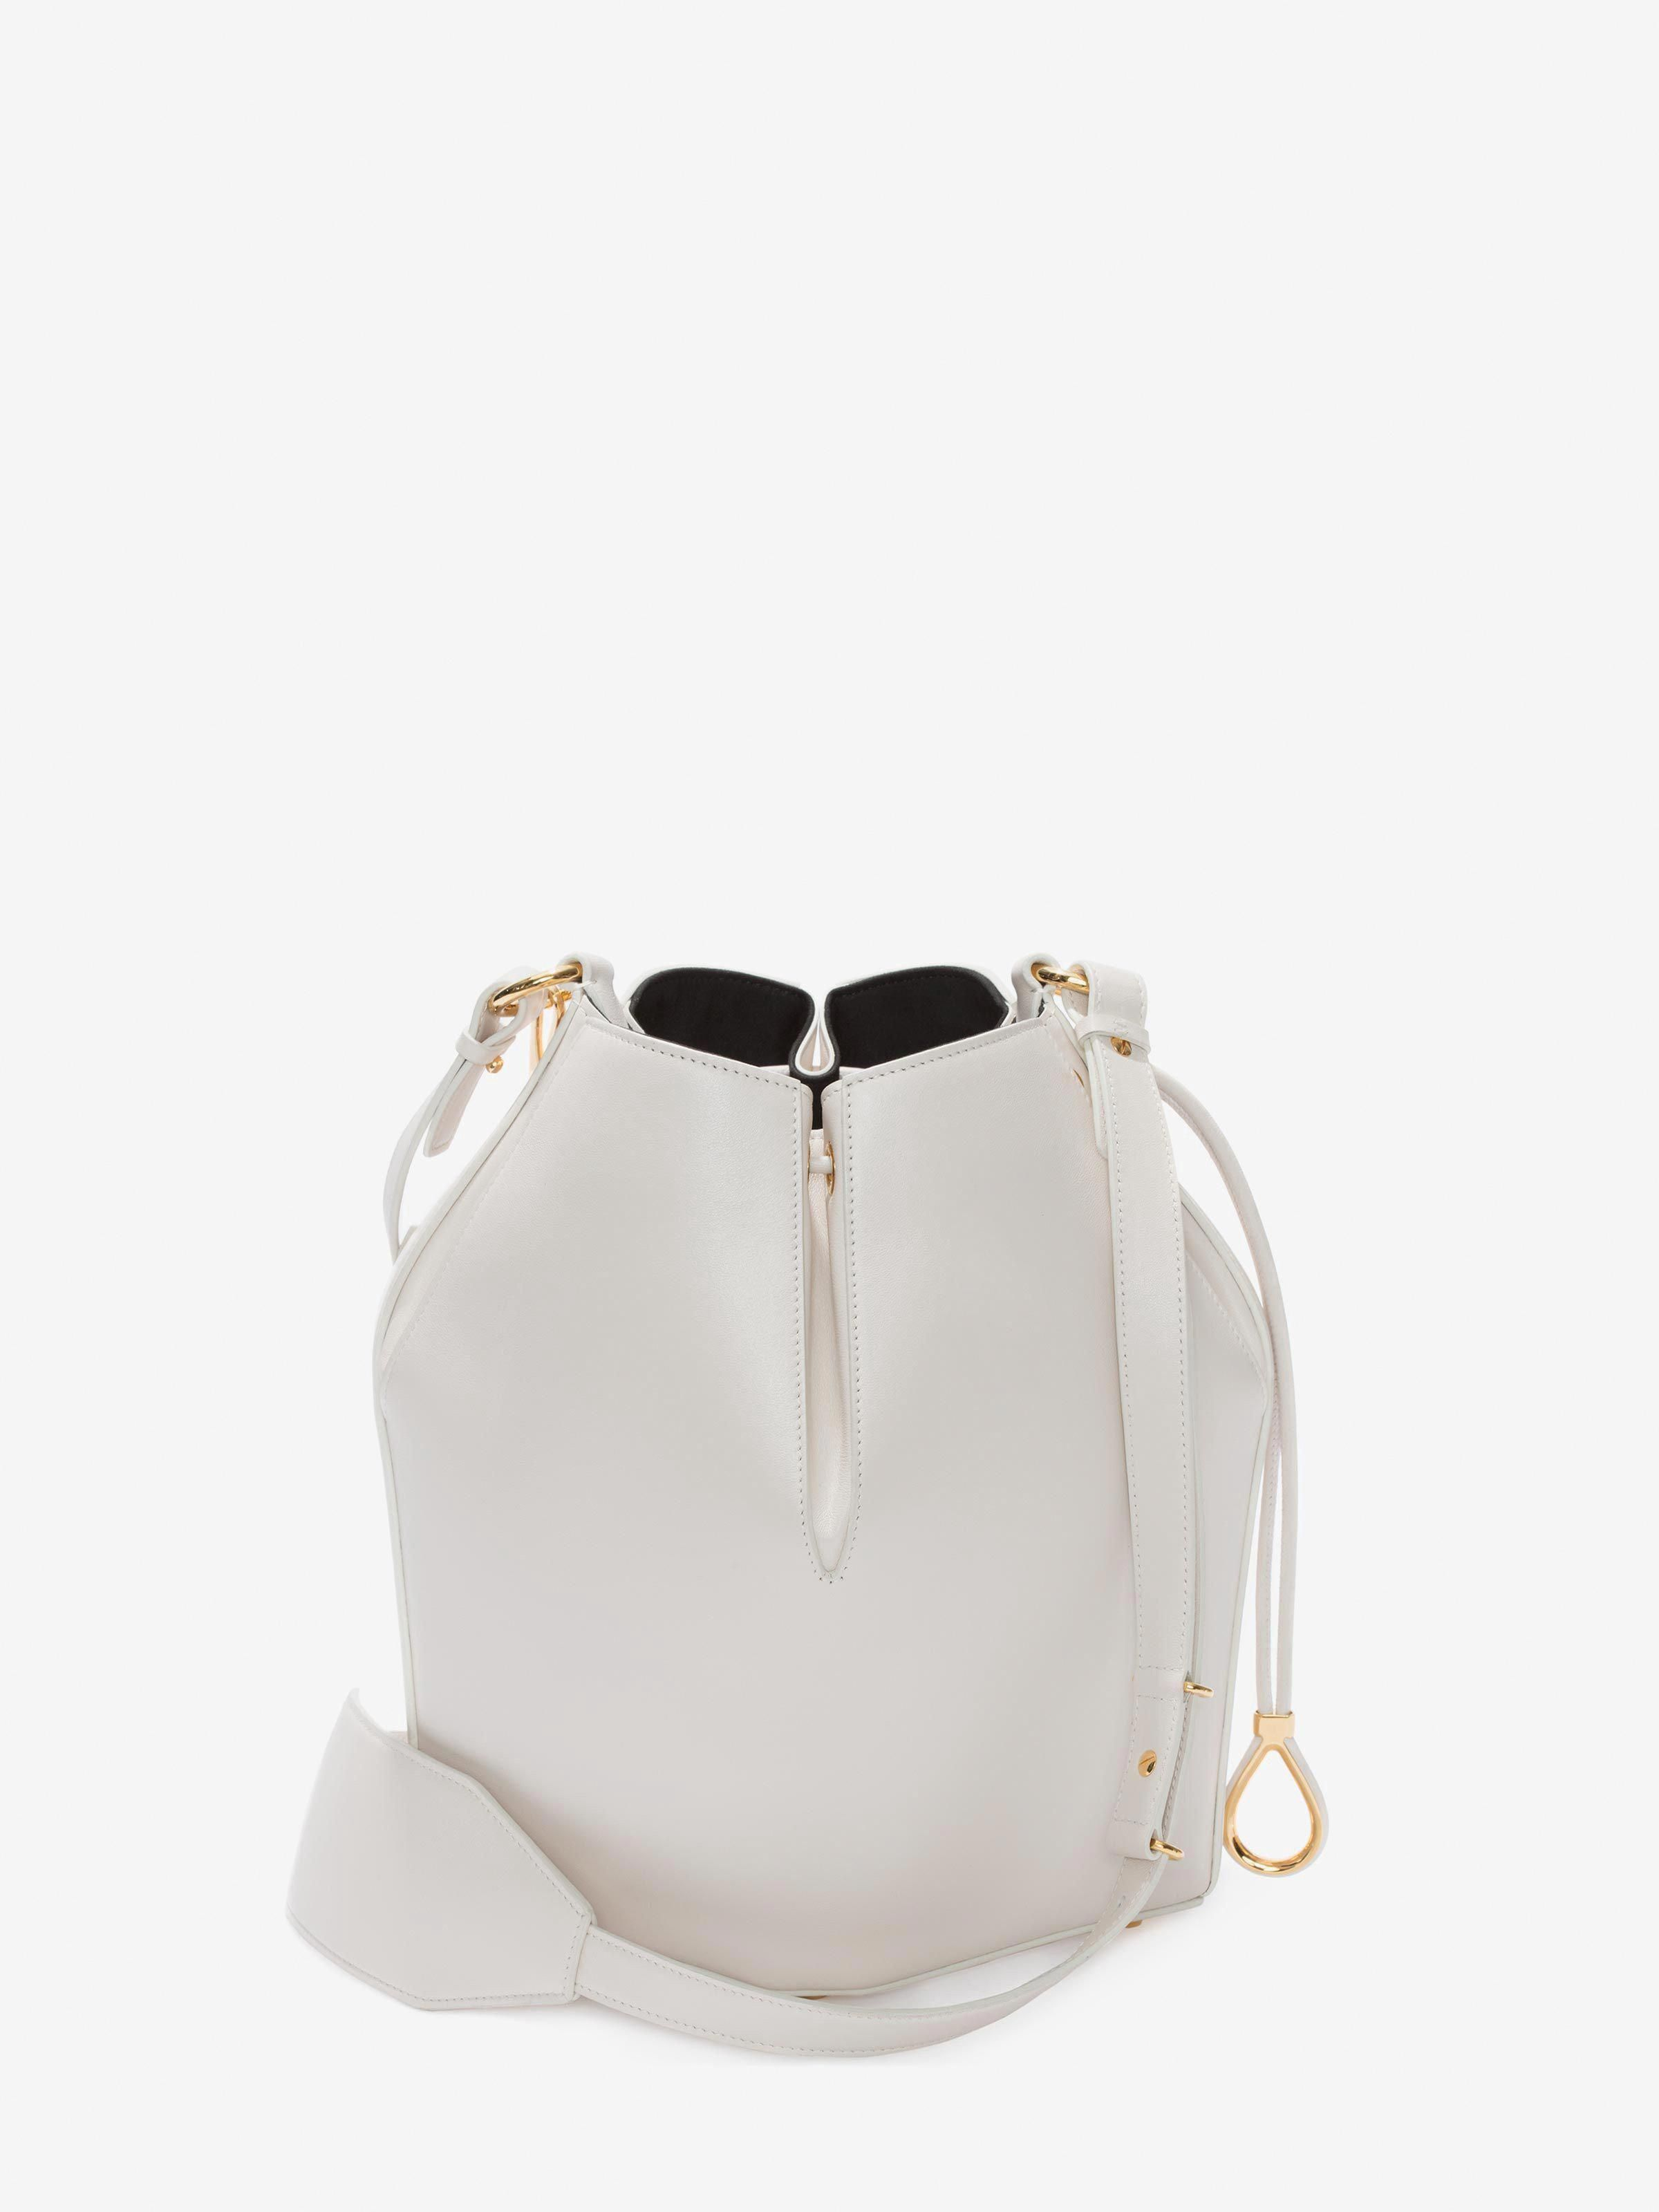 The White Off Mcqueen Alexander Bucket Onesize Bag qwfTyF5